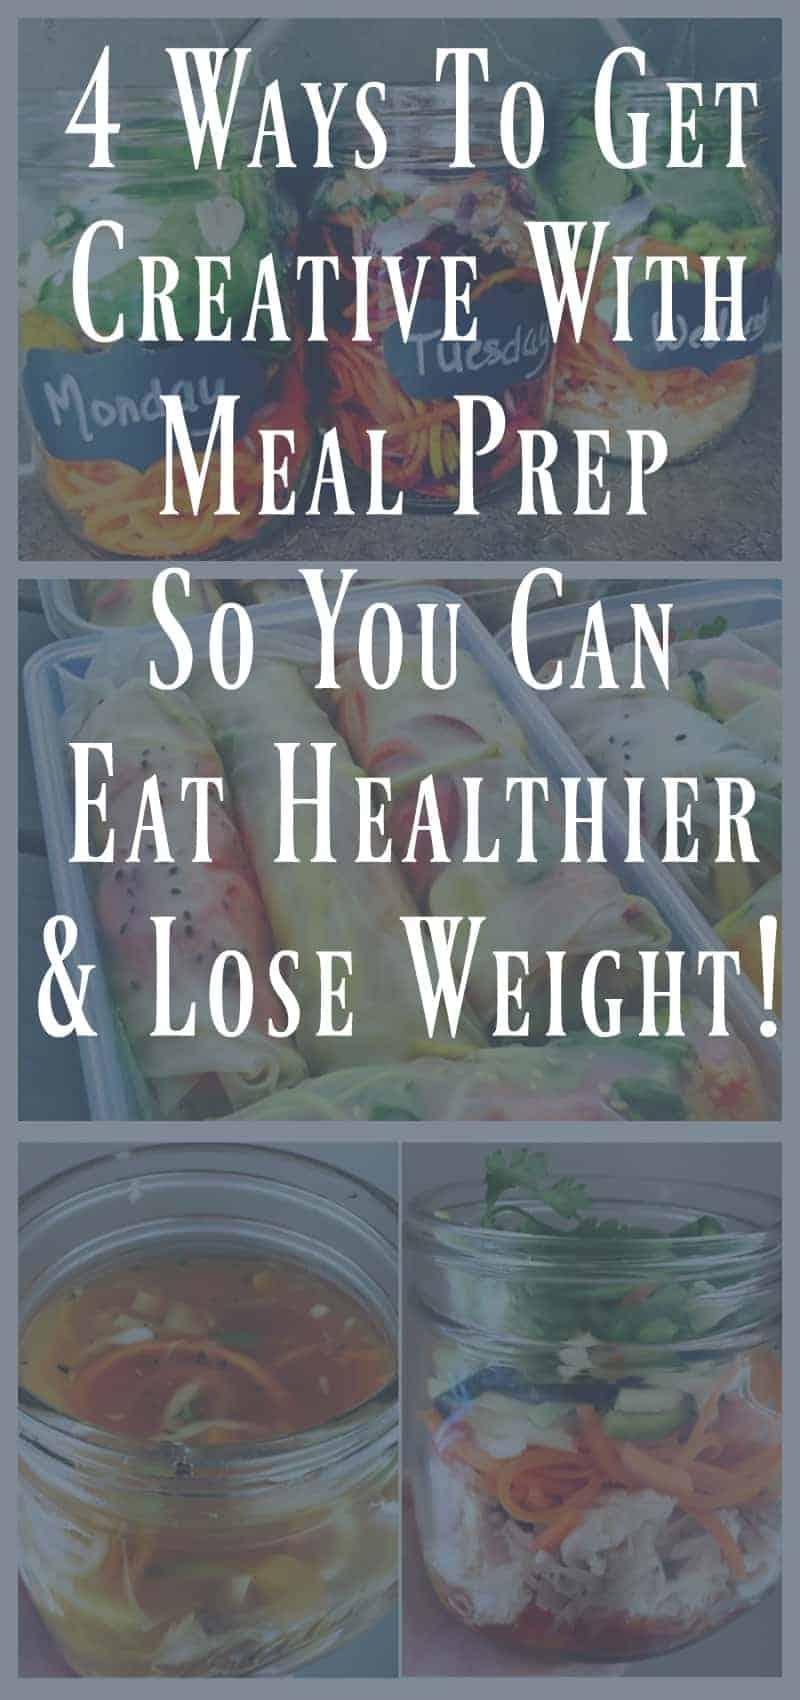 4 ways to get creative with once a week meal prep for weight loss